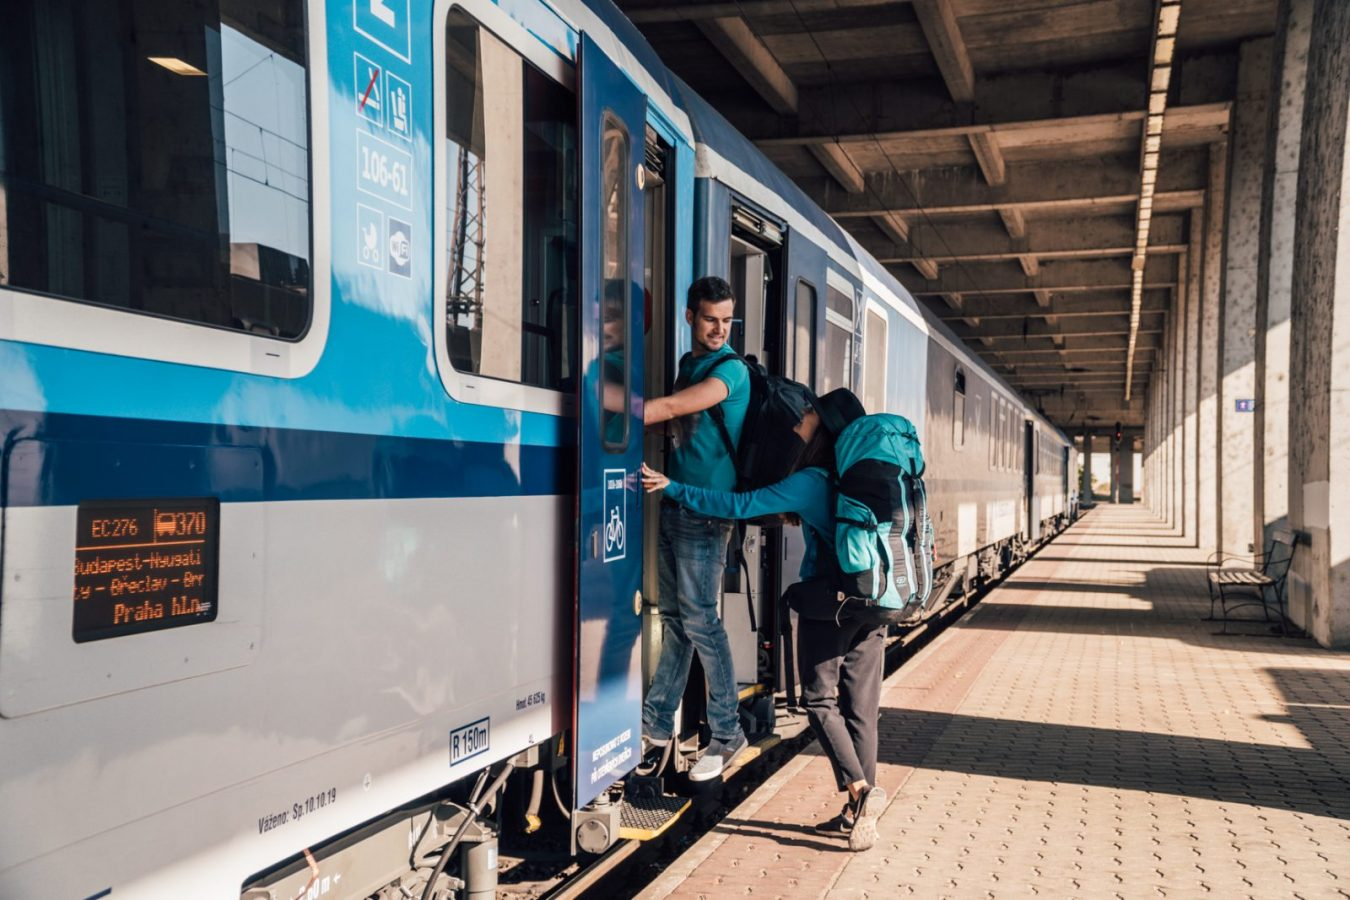 Interrail pass how to buy